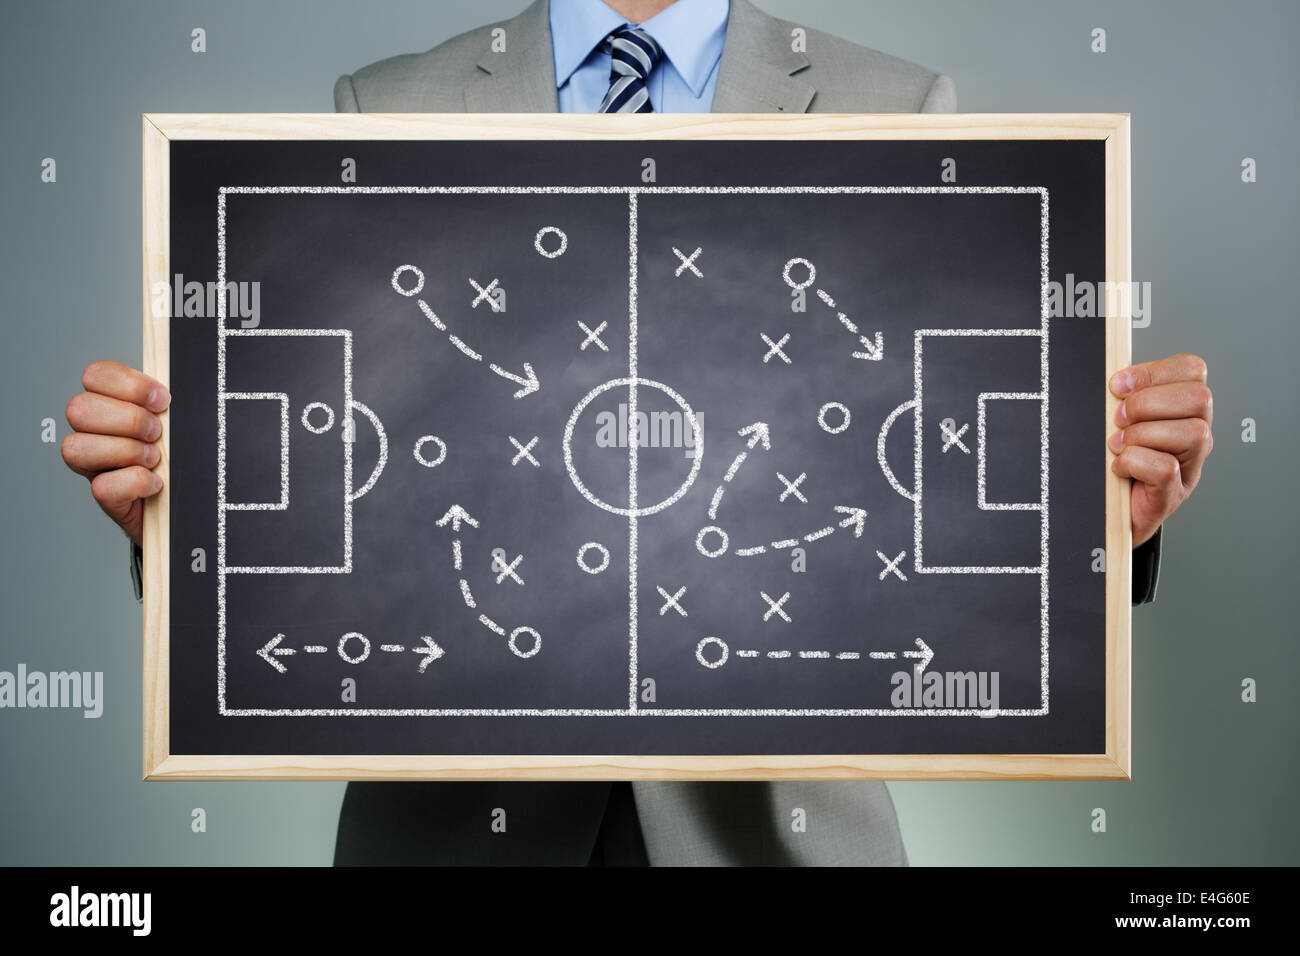 Team organization and strategy - Stock Image